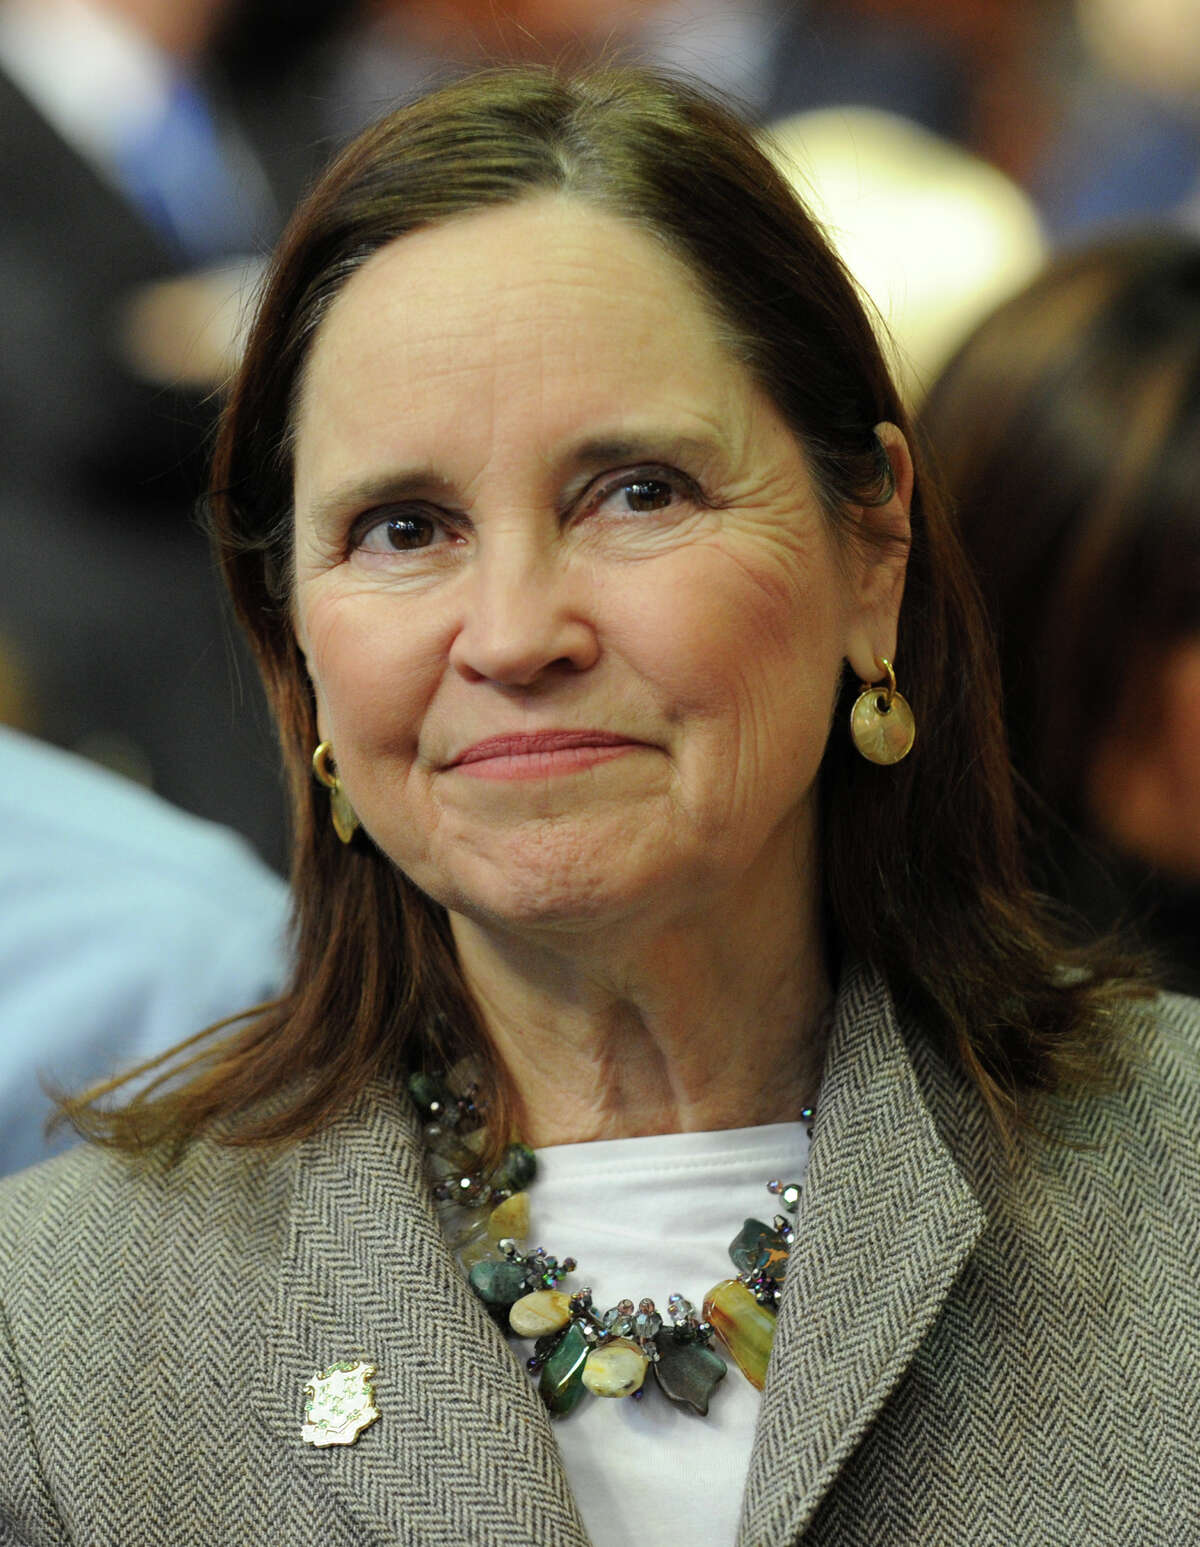 Denise Merrill, Democrat, Connecticut Secretary of the State